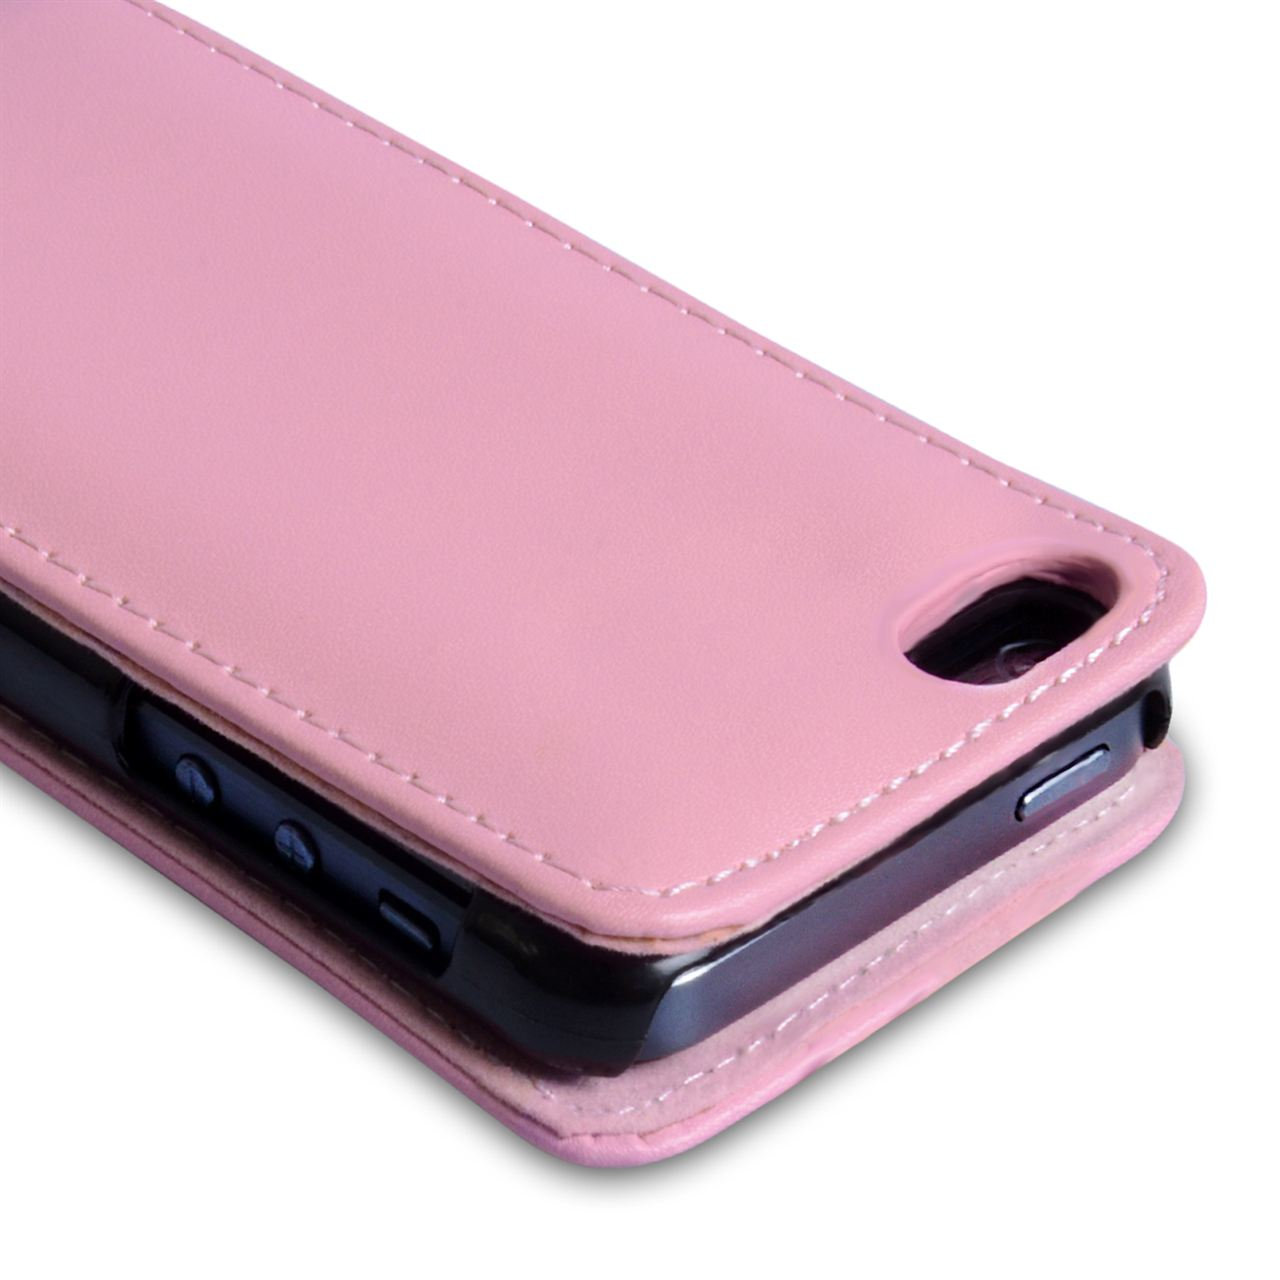 YouSave Accessories iPhone 5C Leather Effect Flip Case - Baby Pink